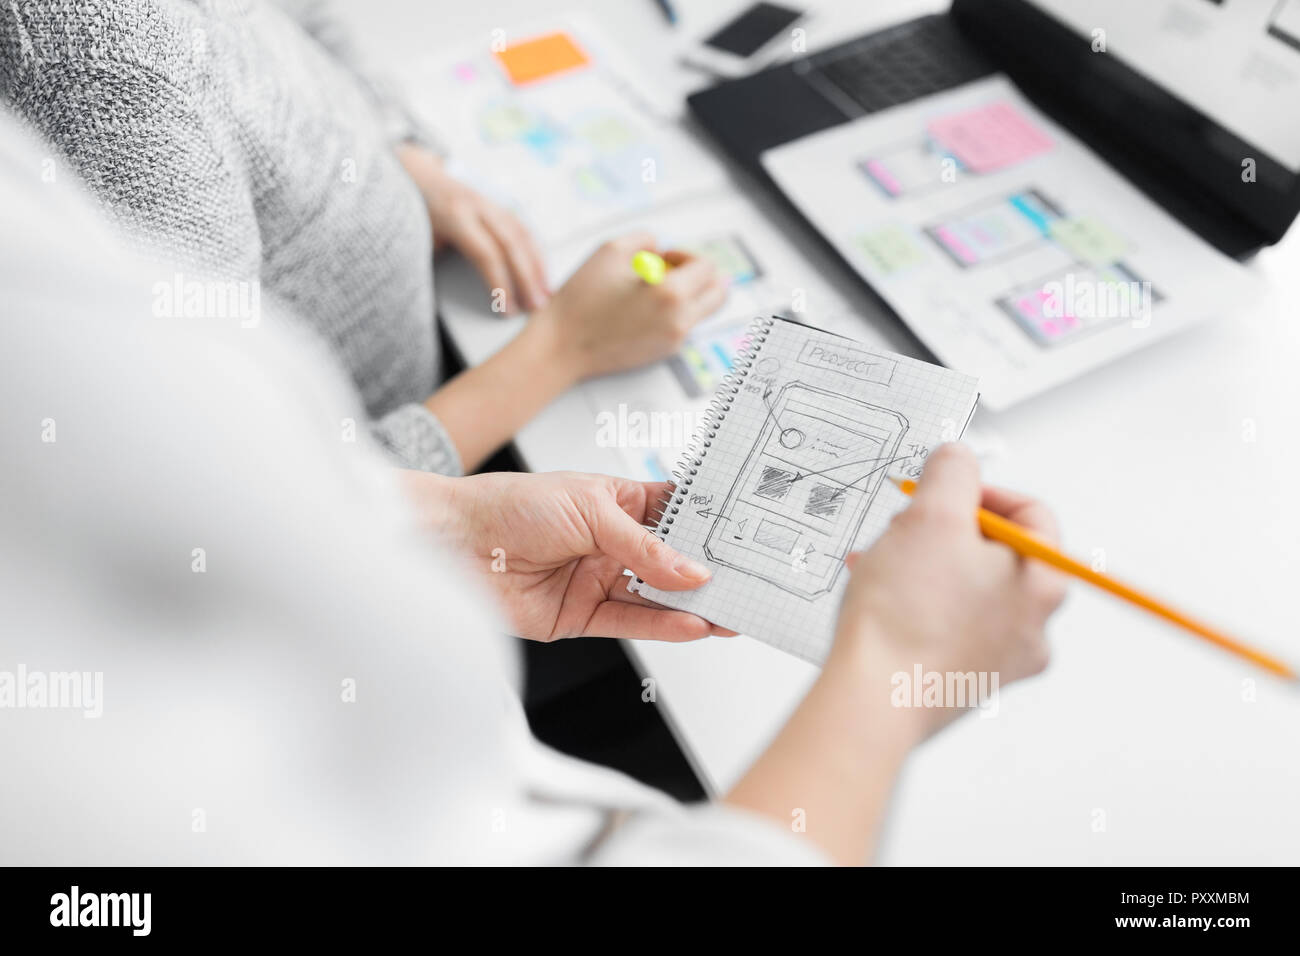 web designers working on user interface project - Stock Image